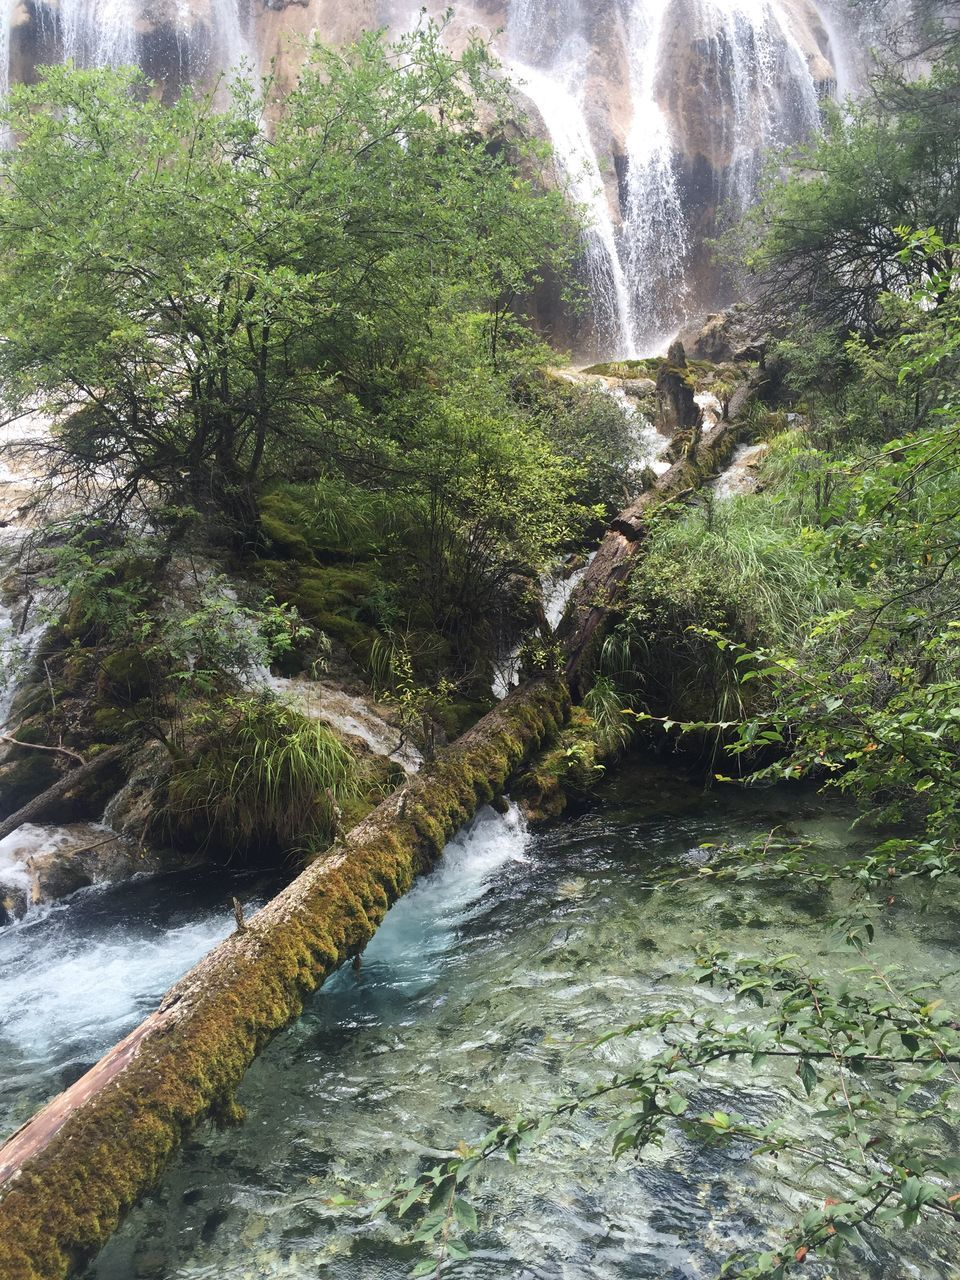 waterfall, flowing water, water, nature, scenics, river, beauty in nature, motion, day, tranquil scene, no people, outdoors, forest, tree